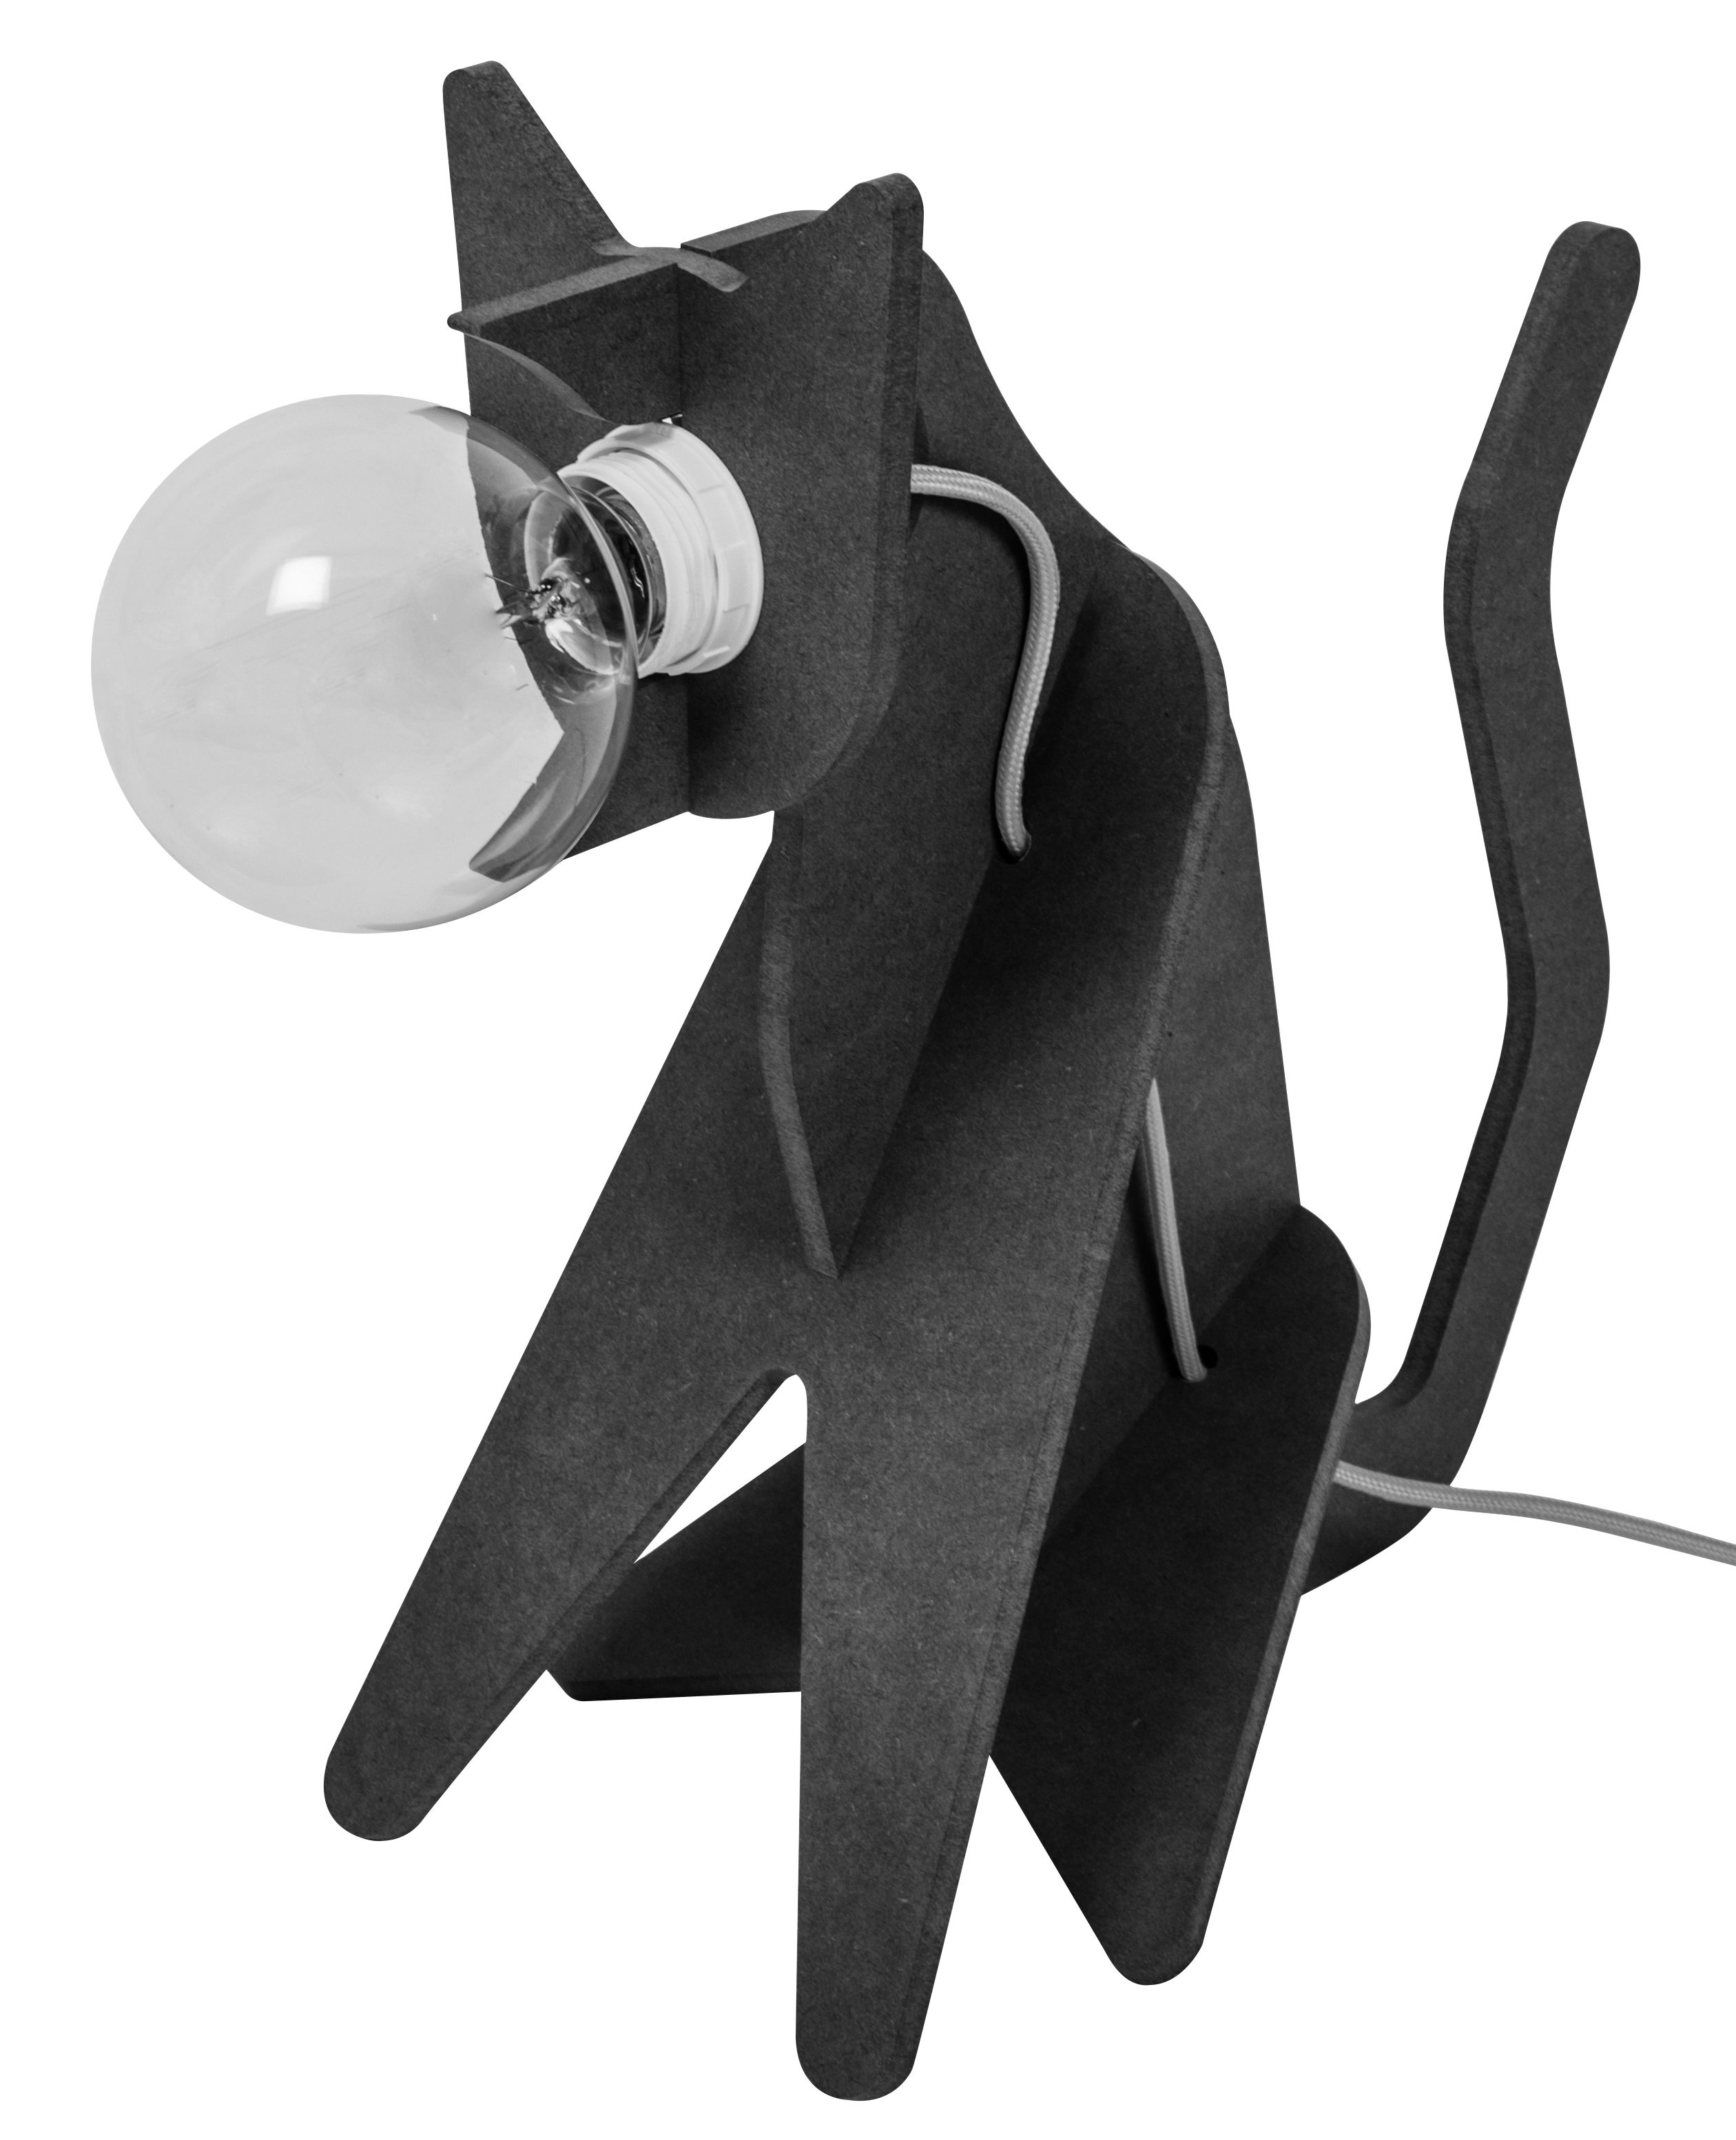 Luminaire - Lampes de table - Lampe de table Get out / Chat - ENOstudio - Noir - Câble gris - Medium teinté